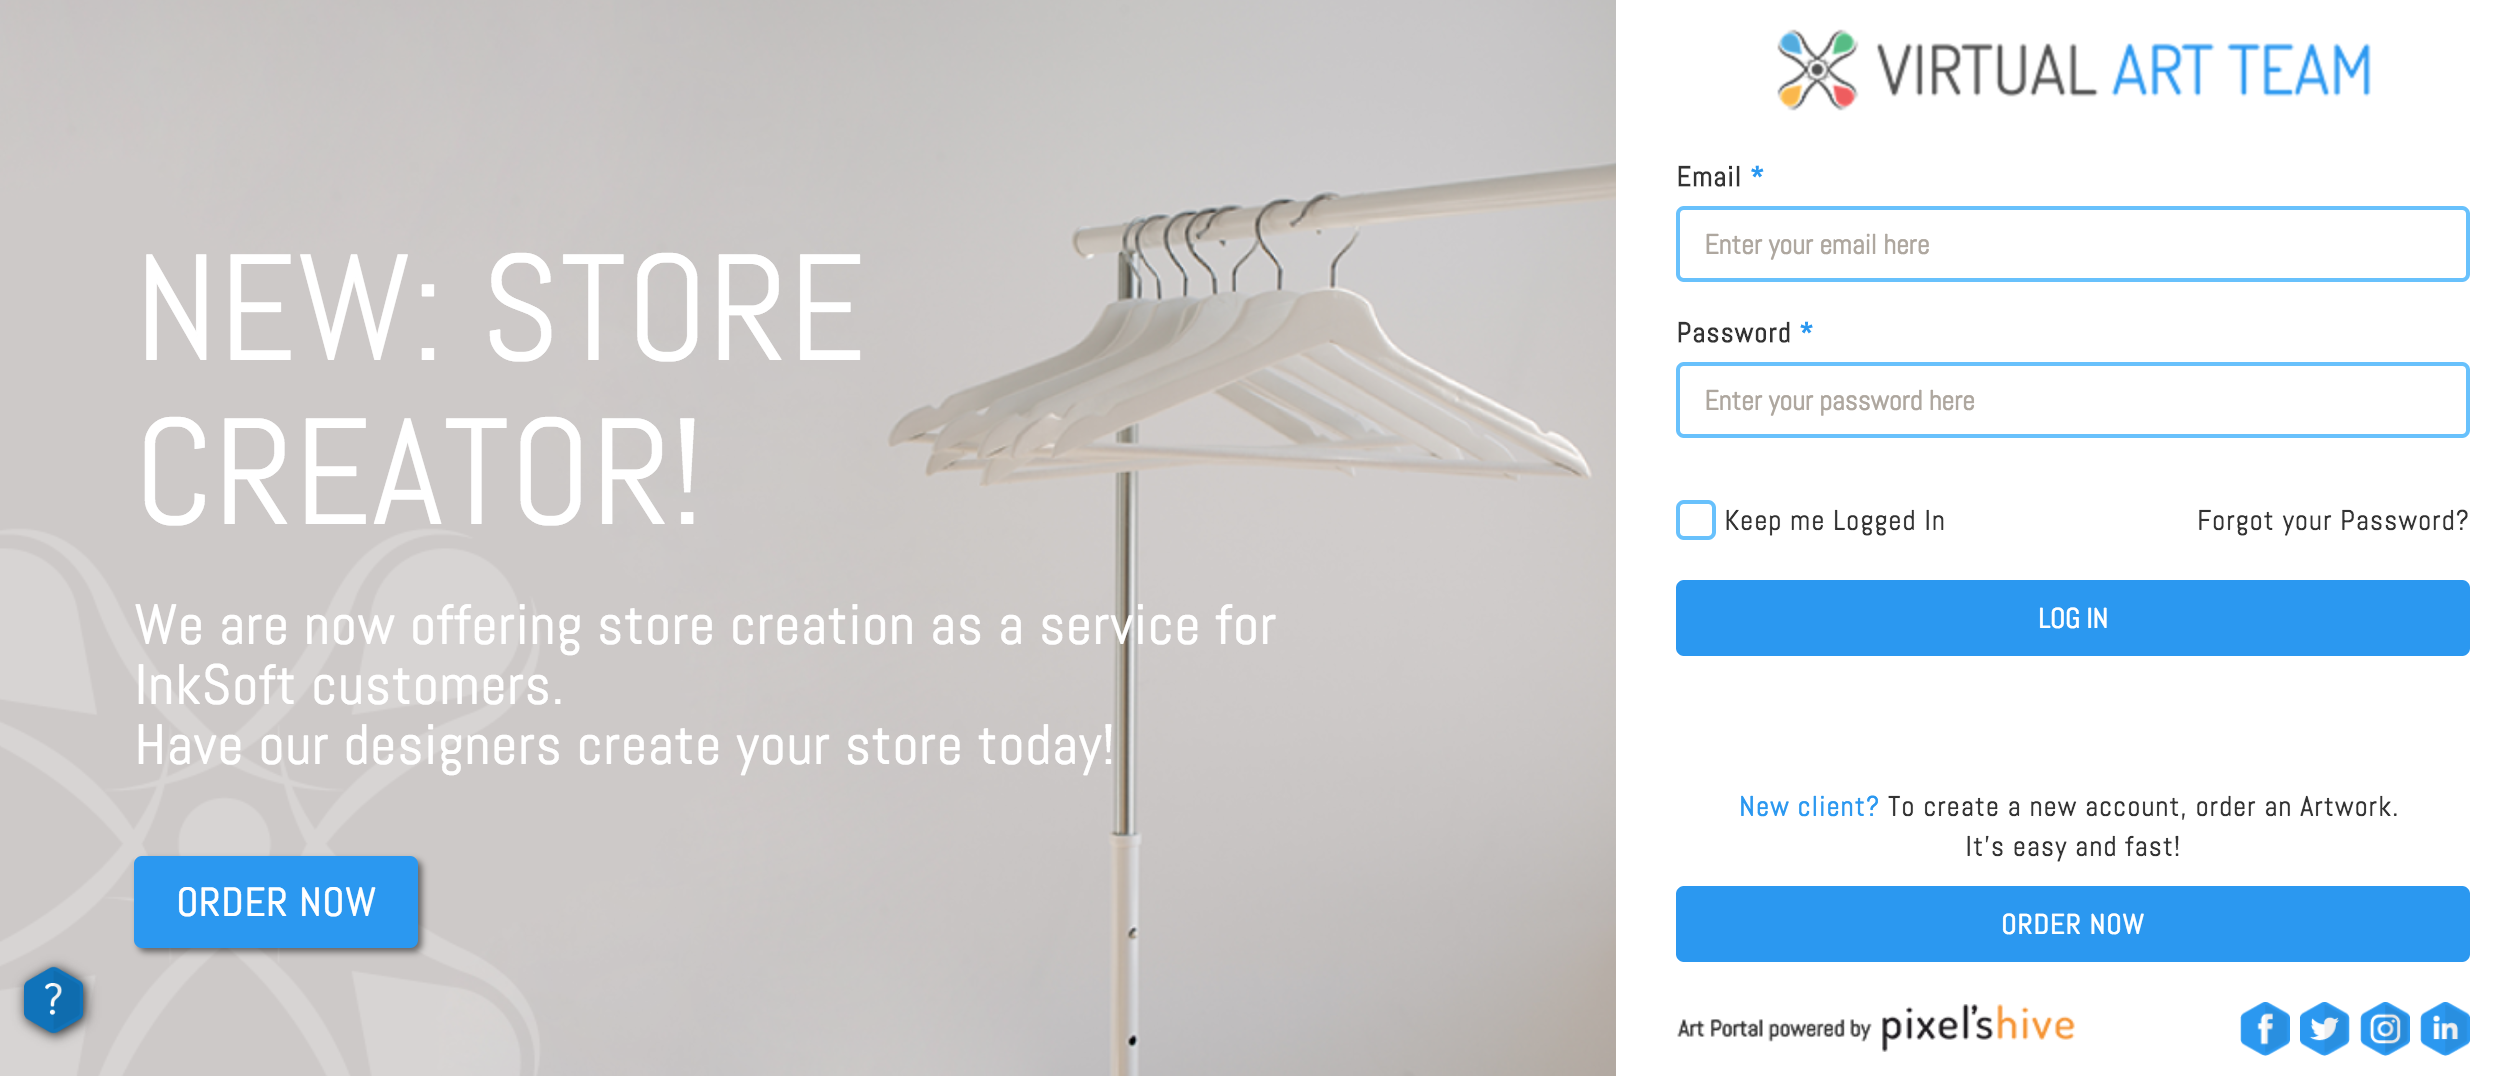 Inksoft Virtual Art Team: Store Creator